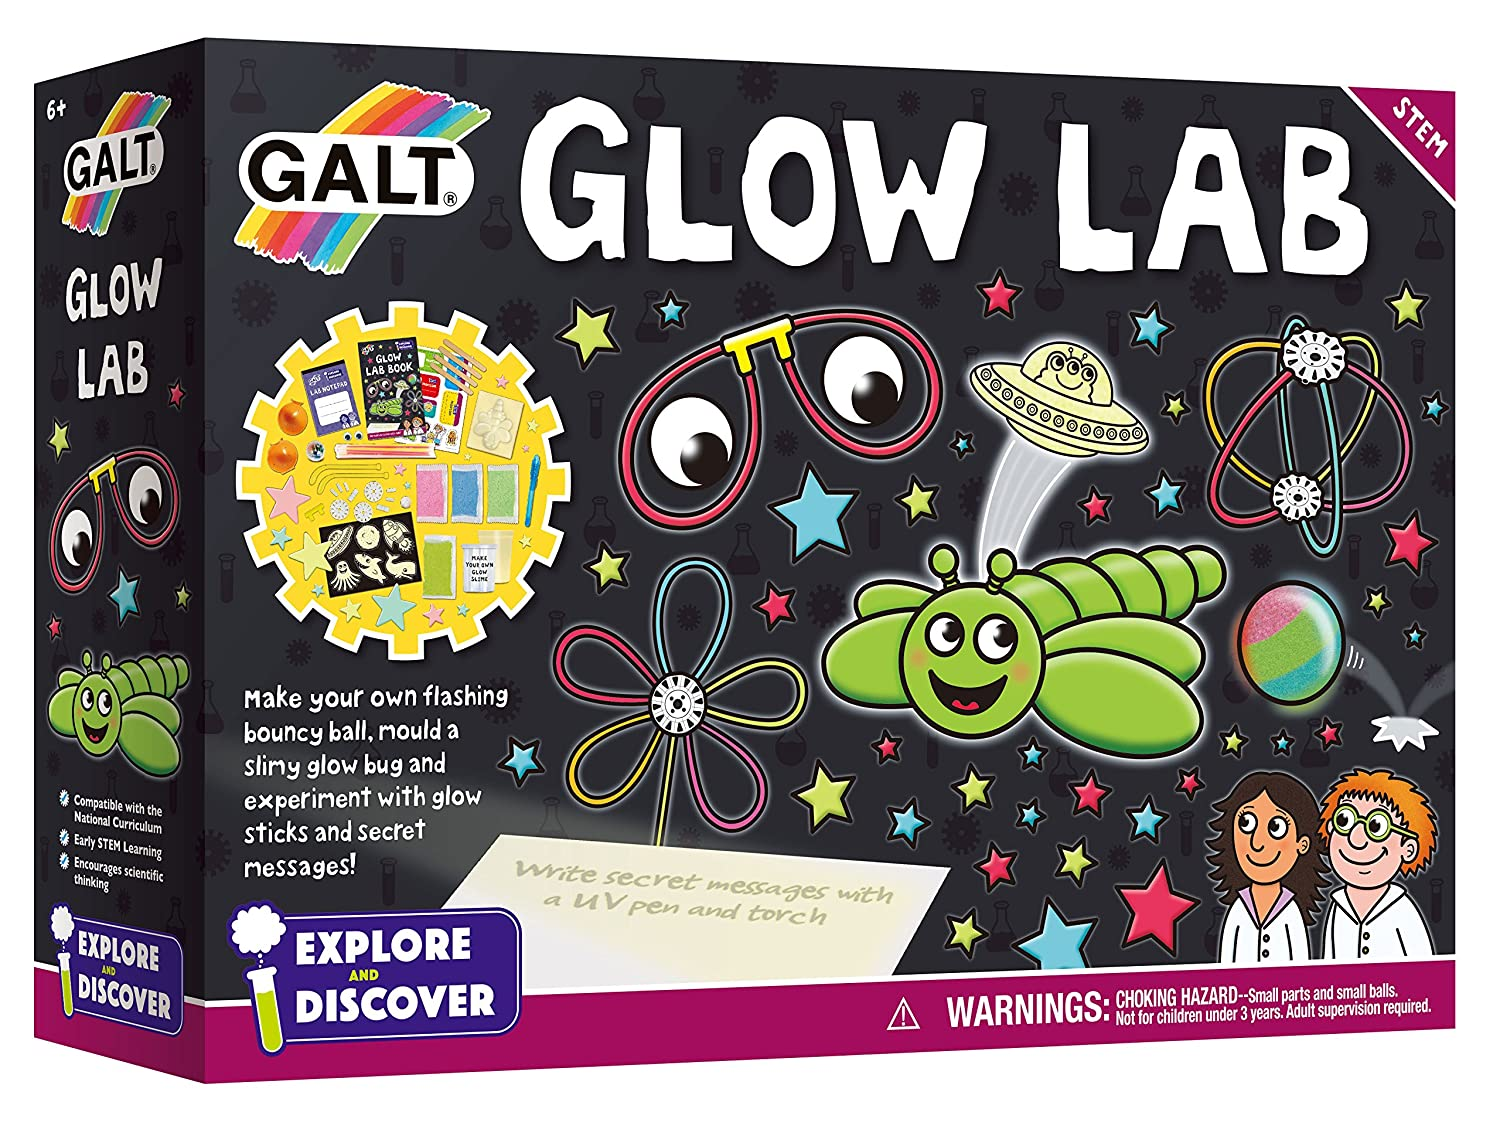 Image result for image of galt glow lab